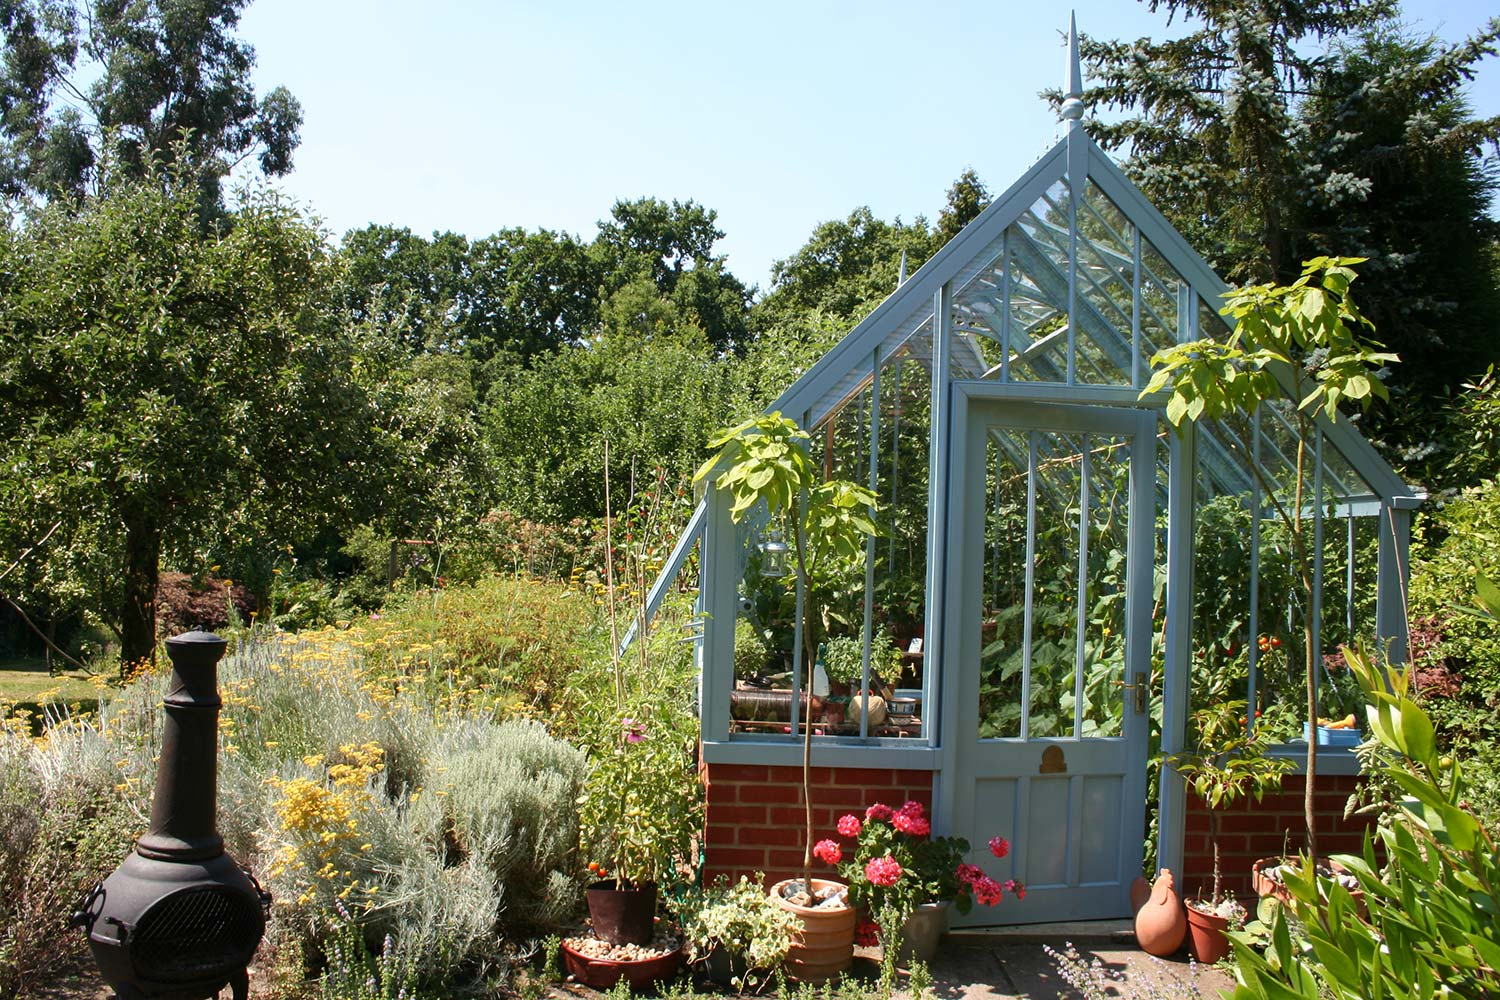 The Burton Greenhouse from the Alitex Kew Greenhouse Collection